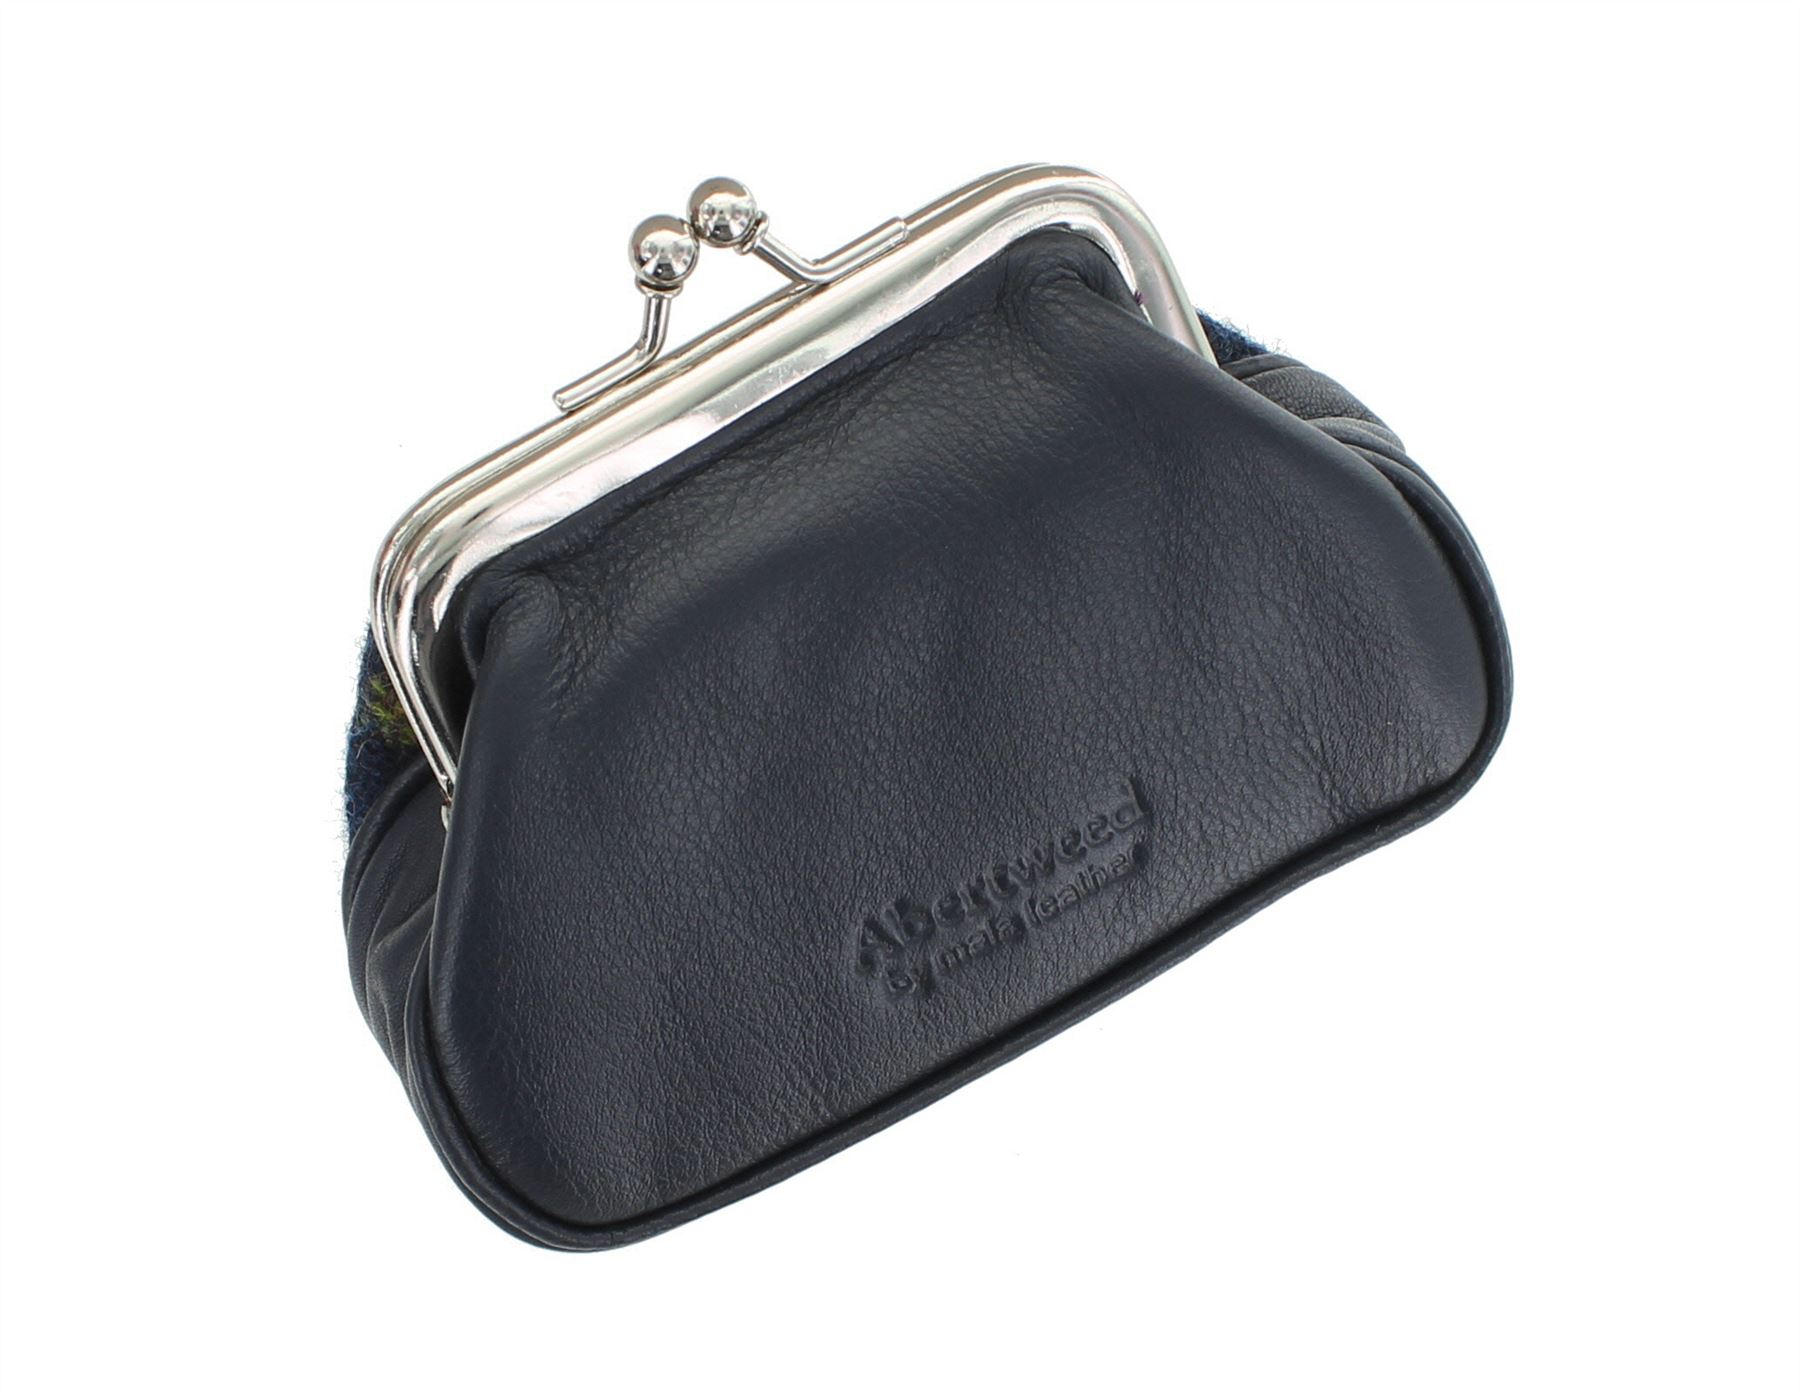 Mala Leather ABERTWEED Collection Leather /& Tweed Clip Top Coin Purse 546/_40